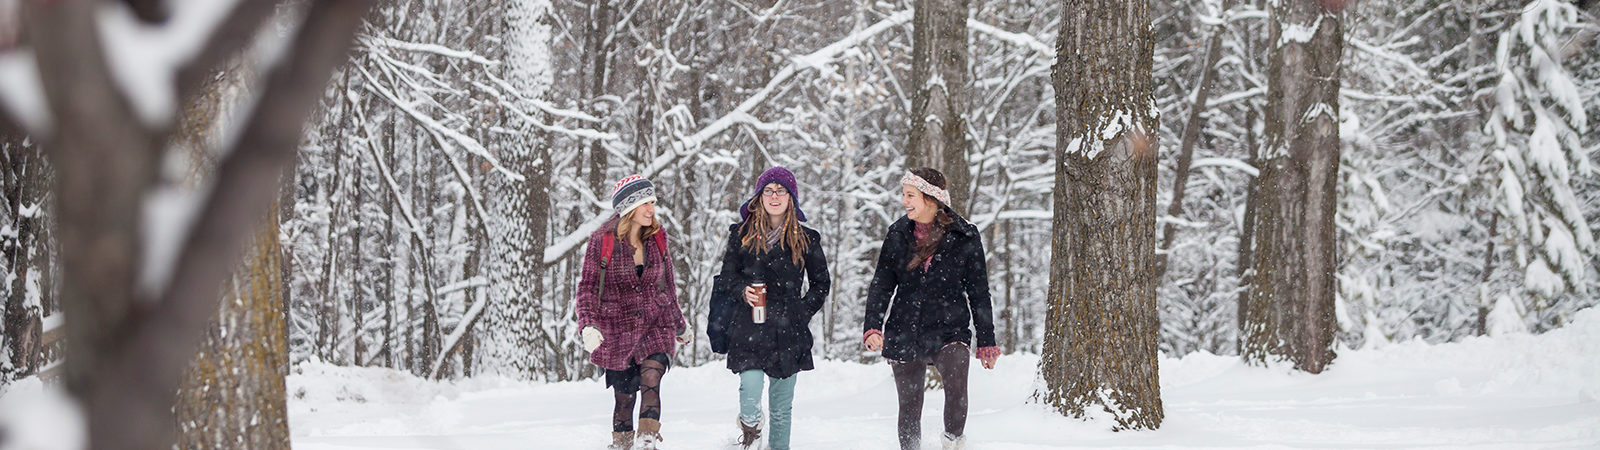 Snowy campus with students walking